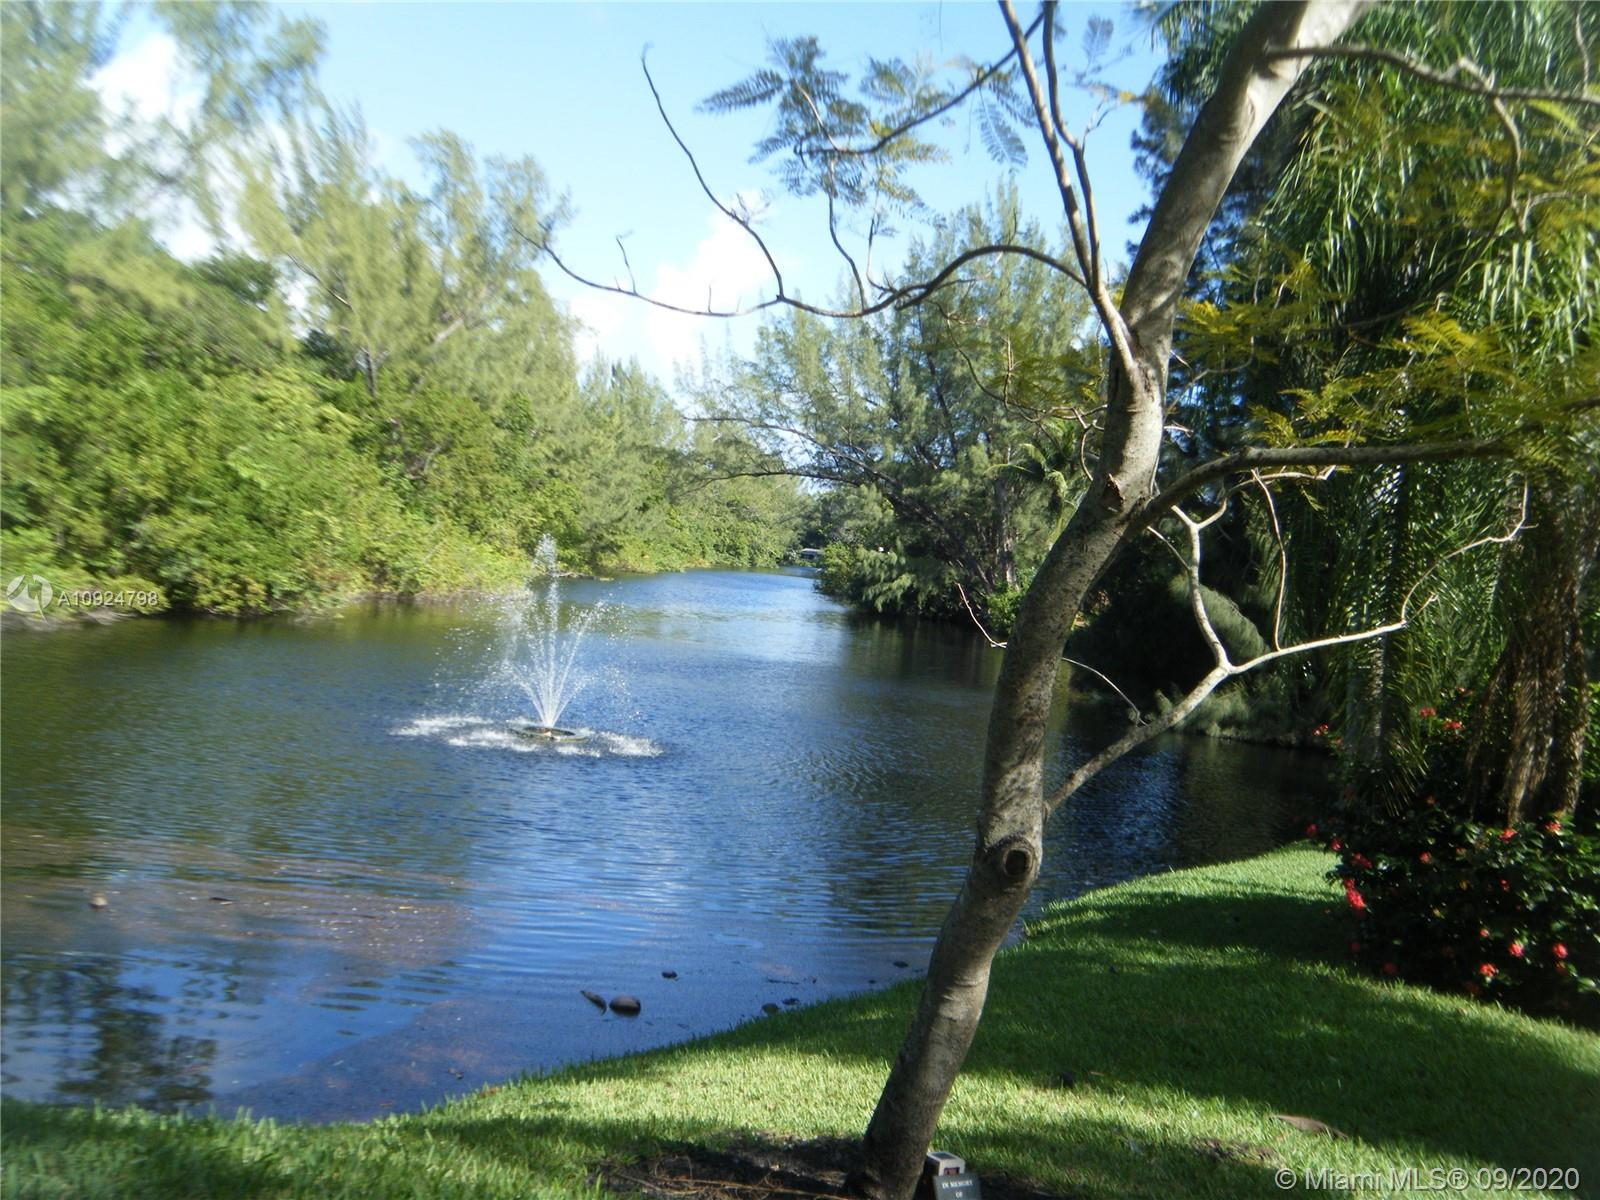 Great location east of US1. Walking distance to supermarket, drug store, shopping, bank, restaurants. 5 min to airport, Port Everglades and Convention Center. 10 minutes to Las Olas Blvd and the beach. UNIT CAN BE RENTED RIGHT AWAY ( Investor). 2nd bedroom has been opened to living room area. Owner willing to divide again at her cost. Tenant occupied until October 31st,2020. 24 HR notice. Call Mariela to shedule appt.